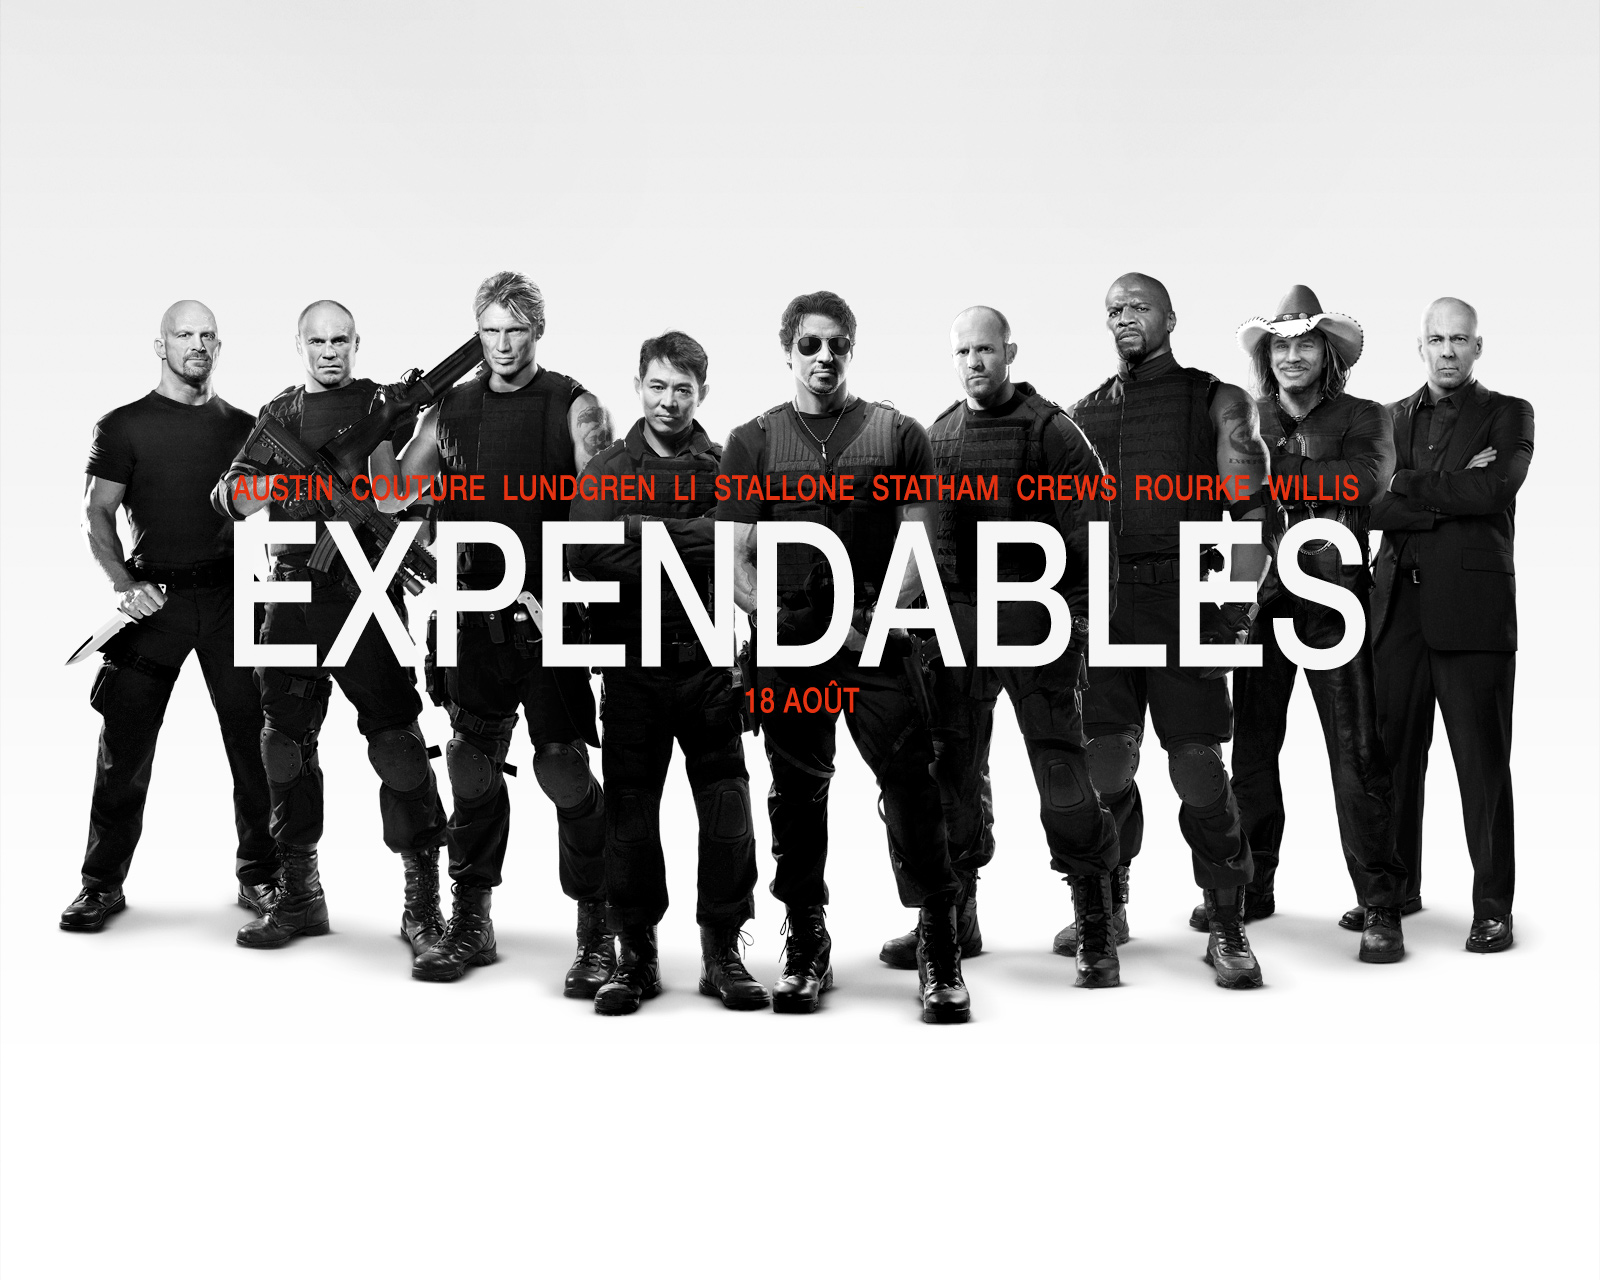 Expendables_03_1600x1280.jpg